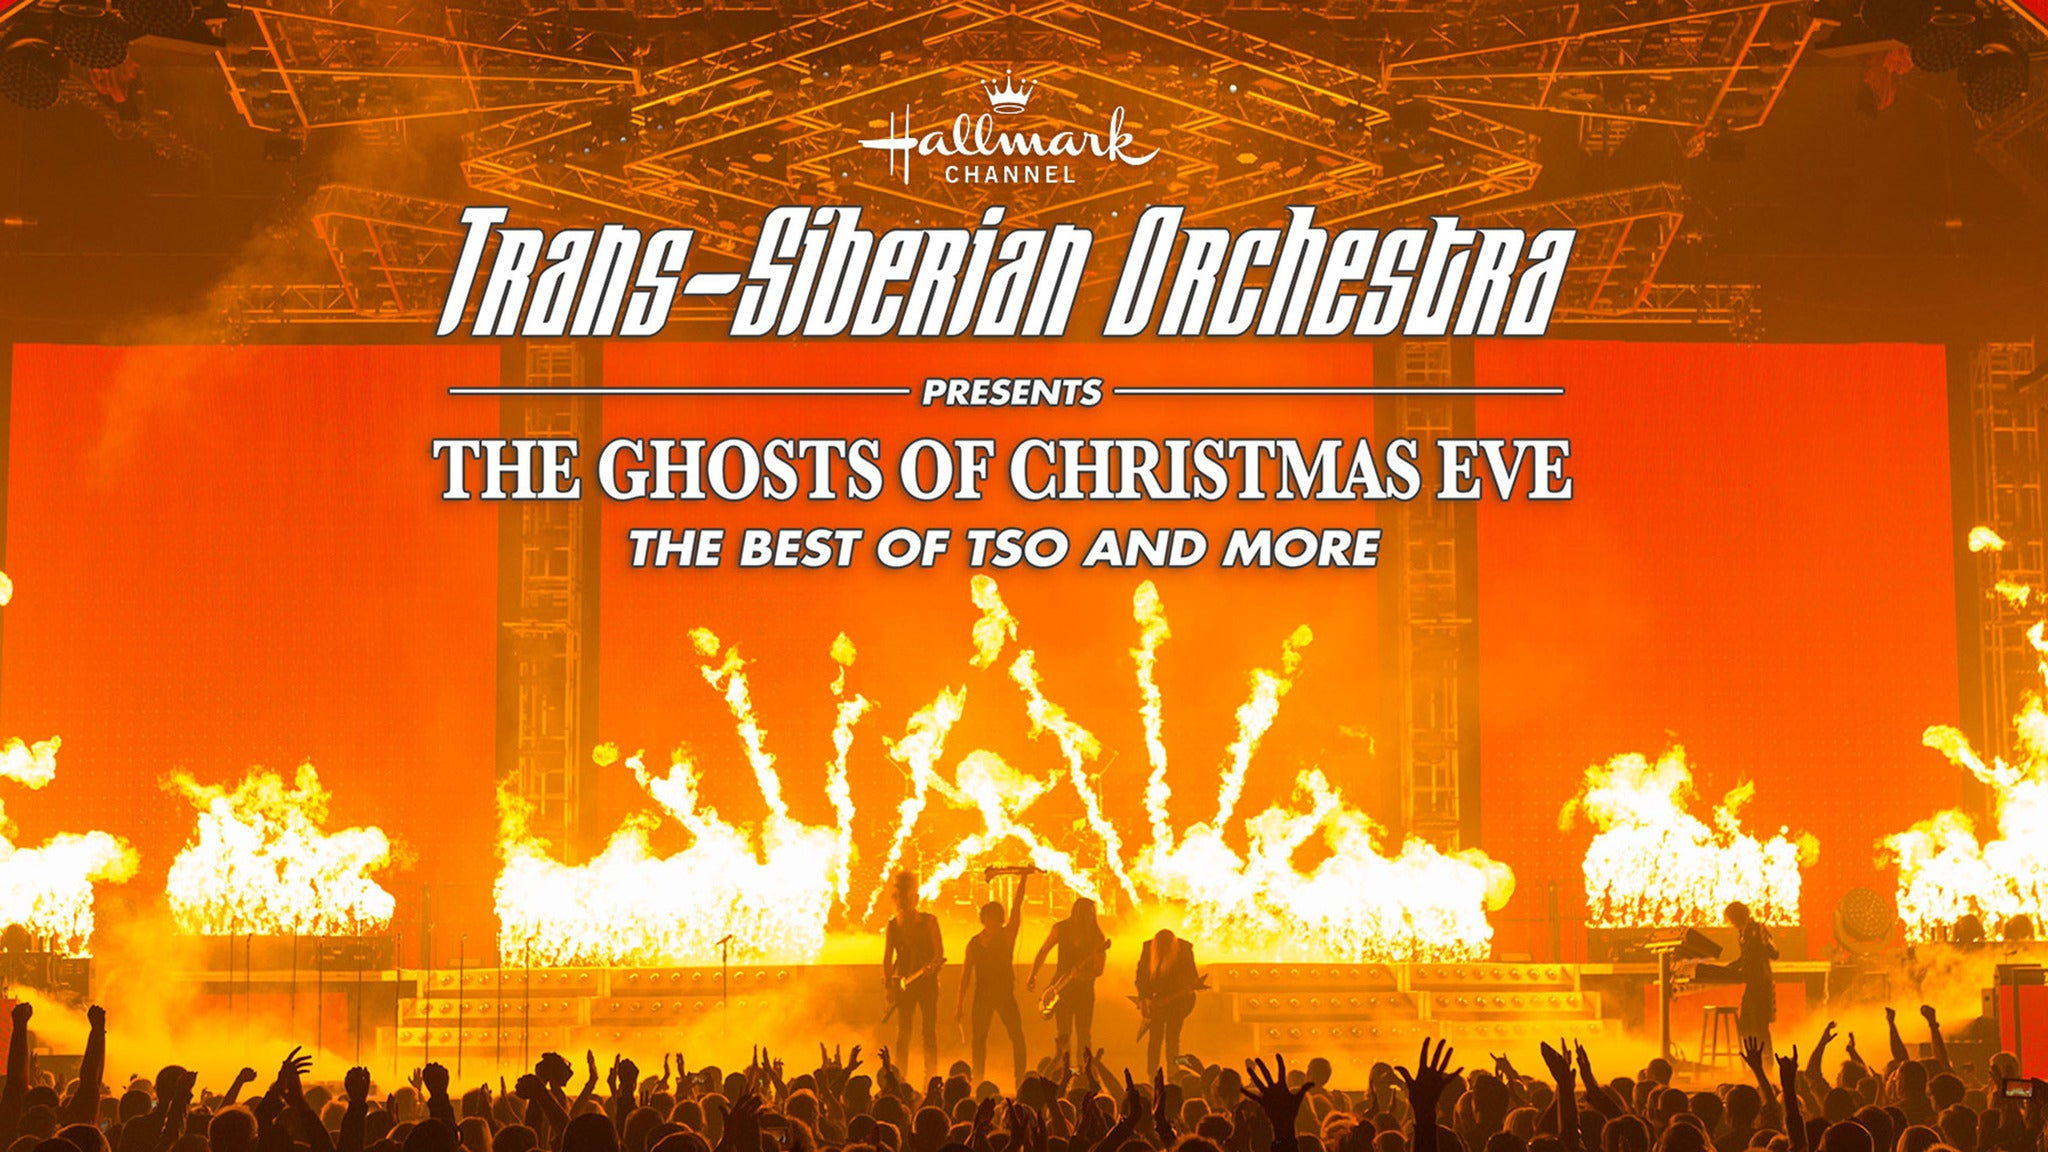 Hallmark Channel Presents Trans-Siberian Orchestra 2017 - Bridgeport, CT 06604